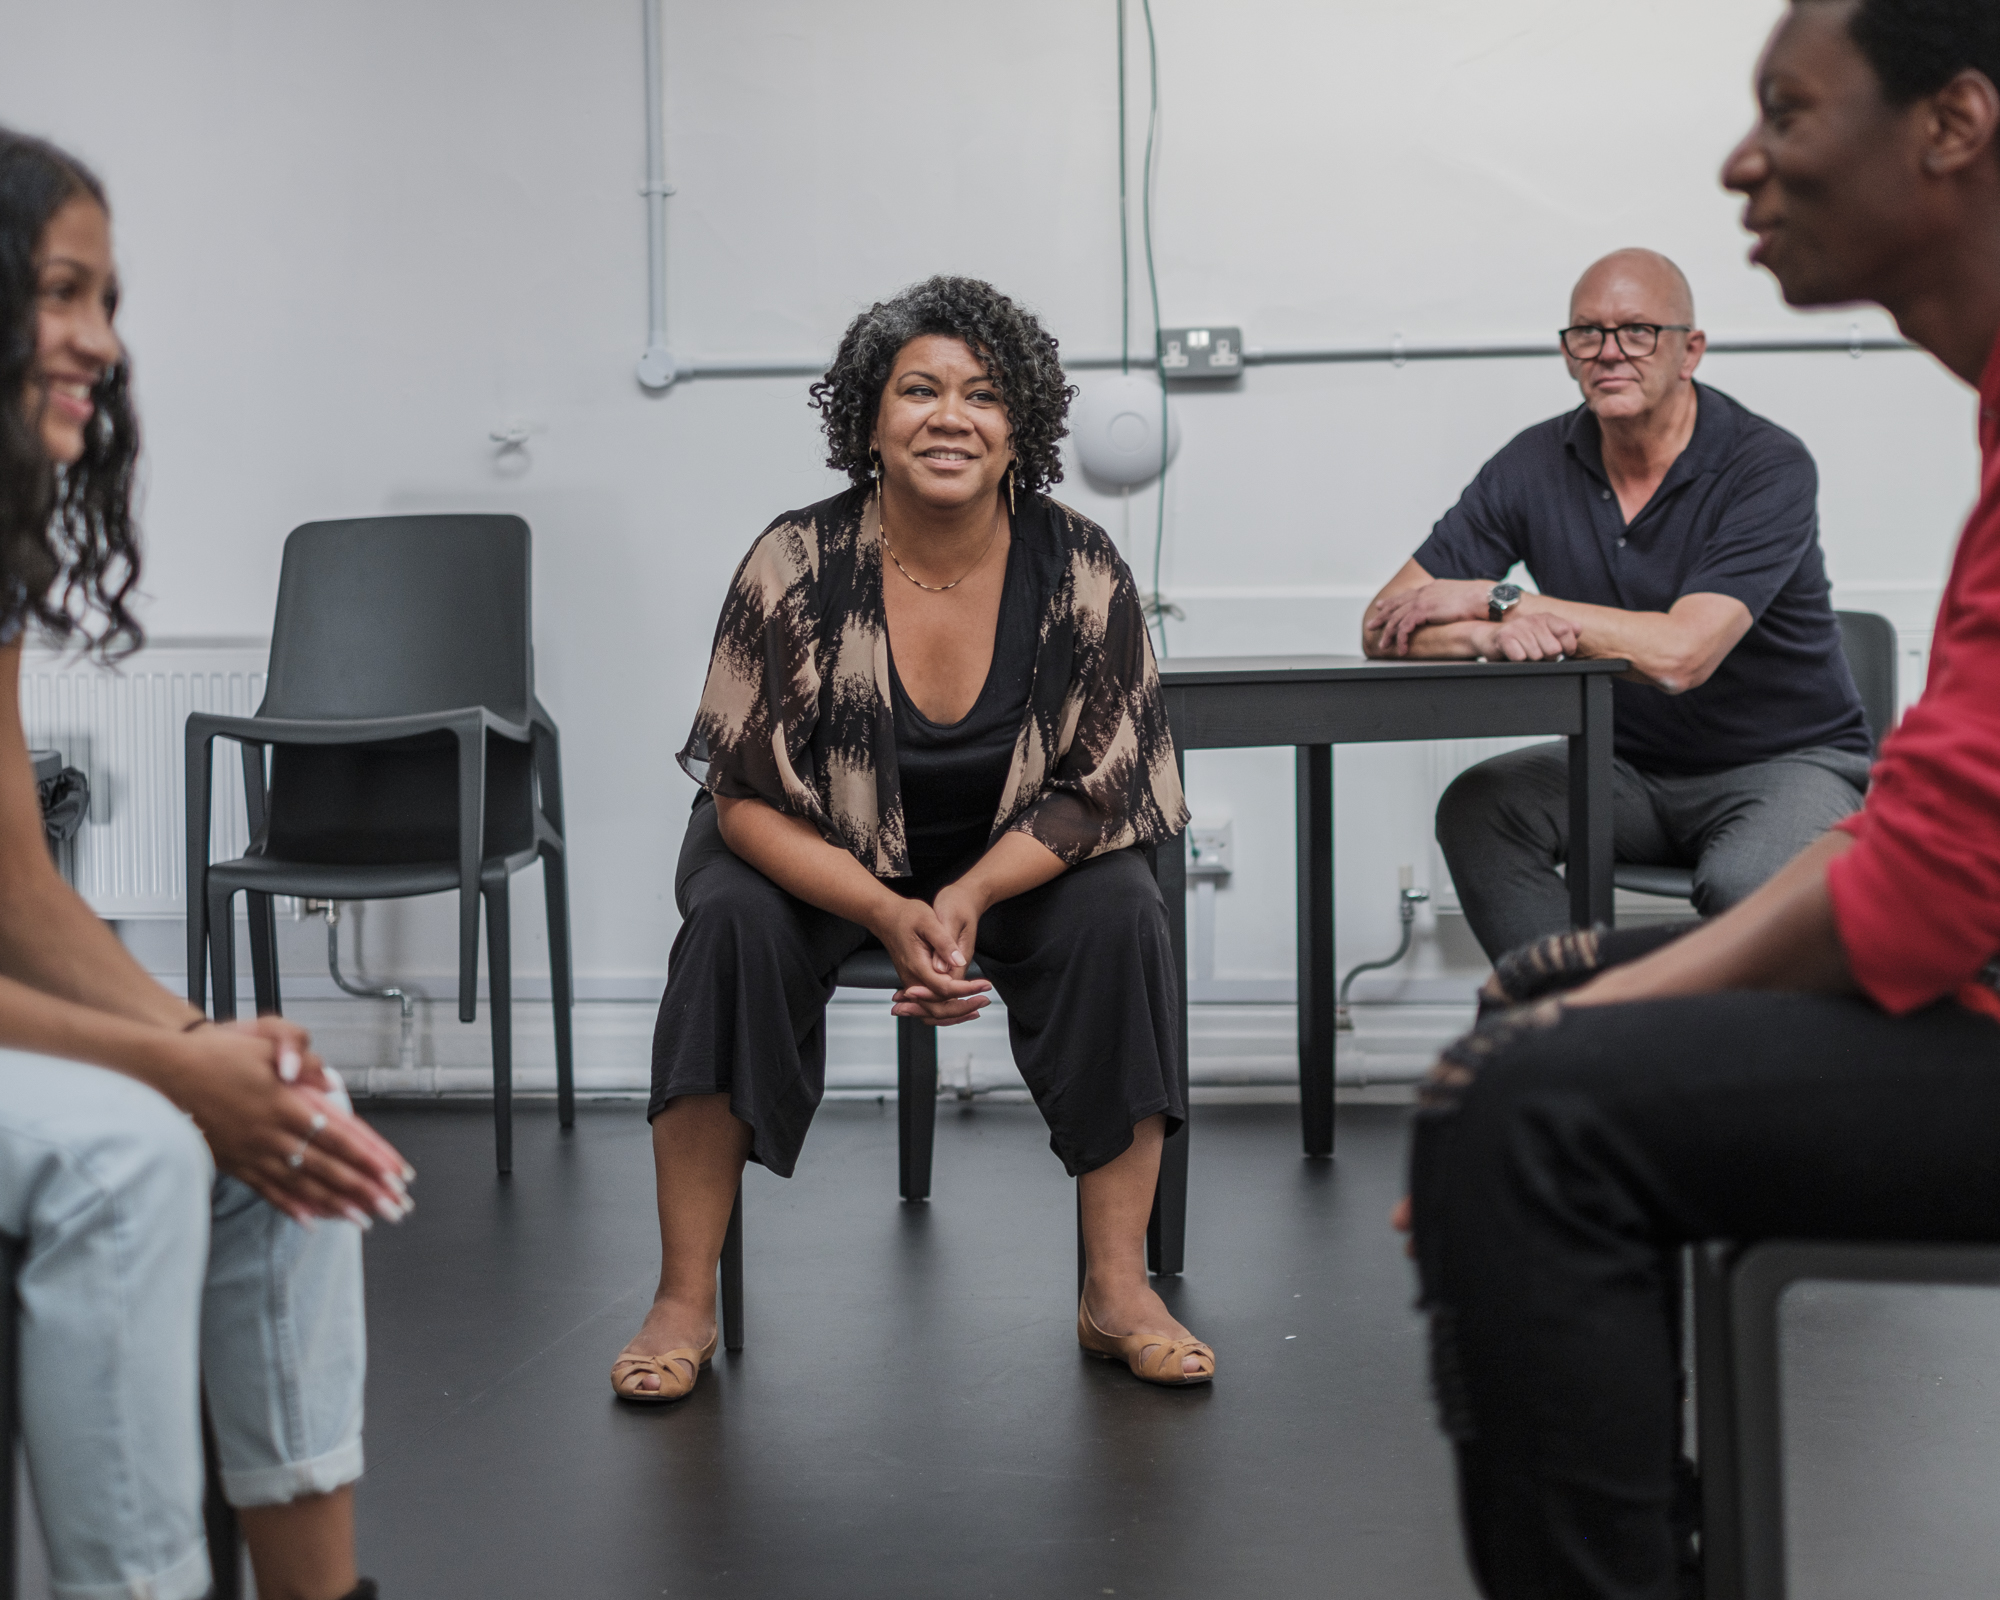 Tobacco Factory acting degree aims to empower